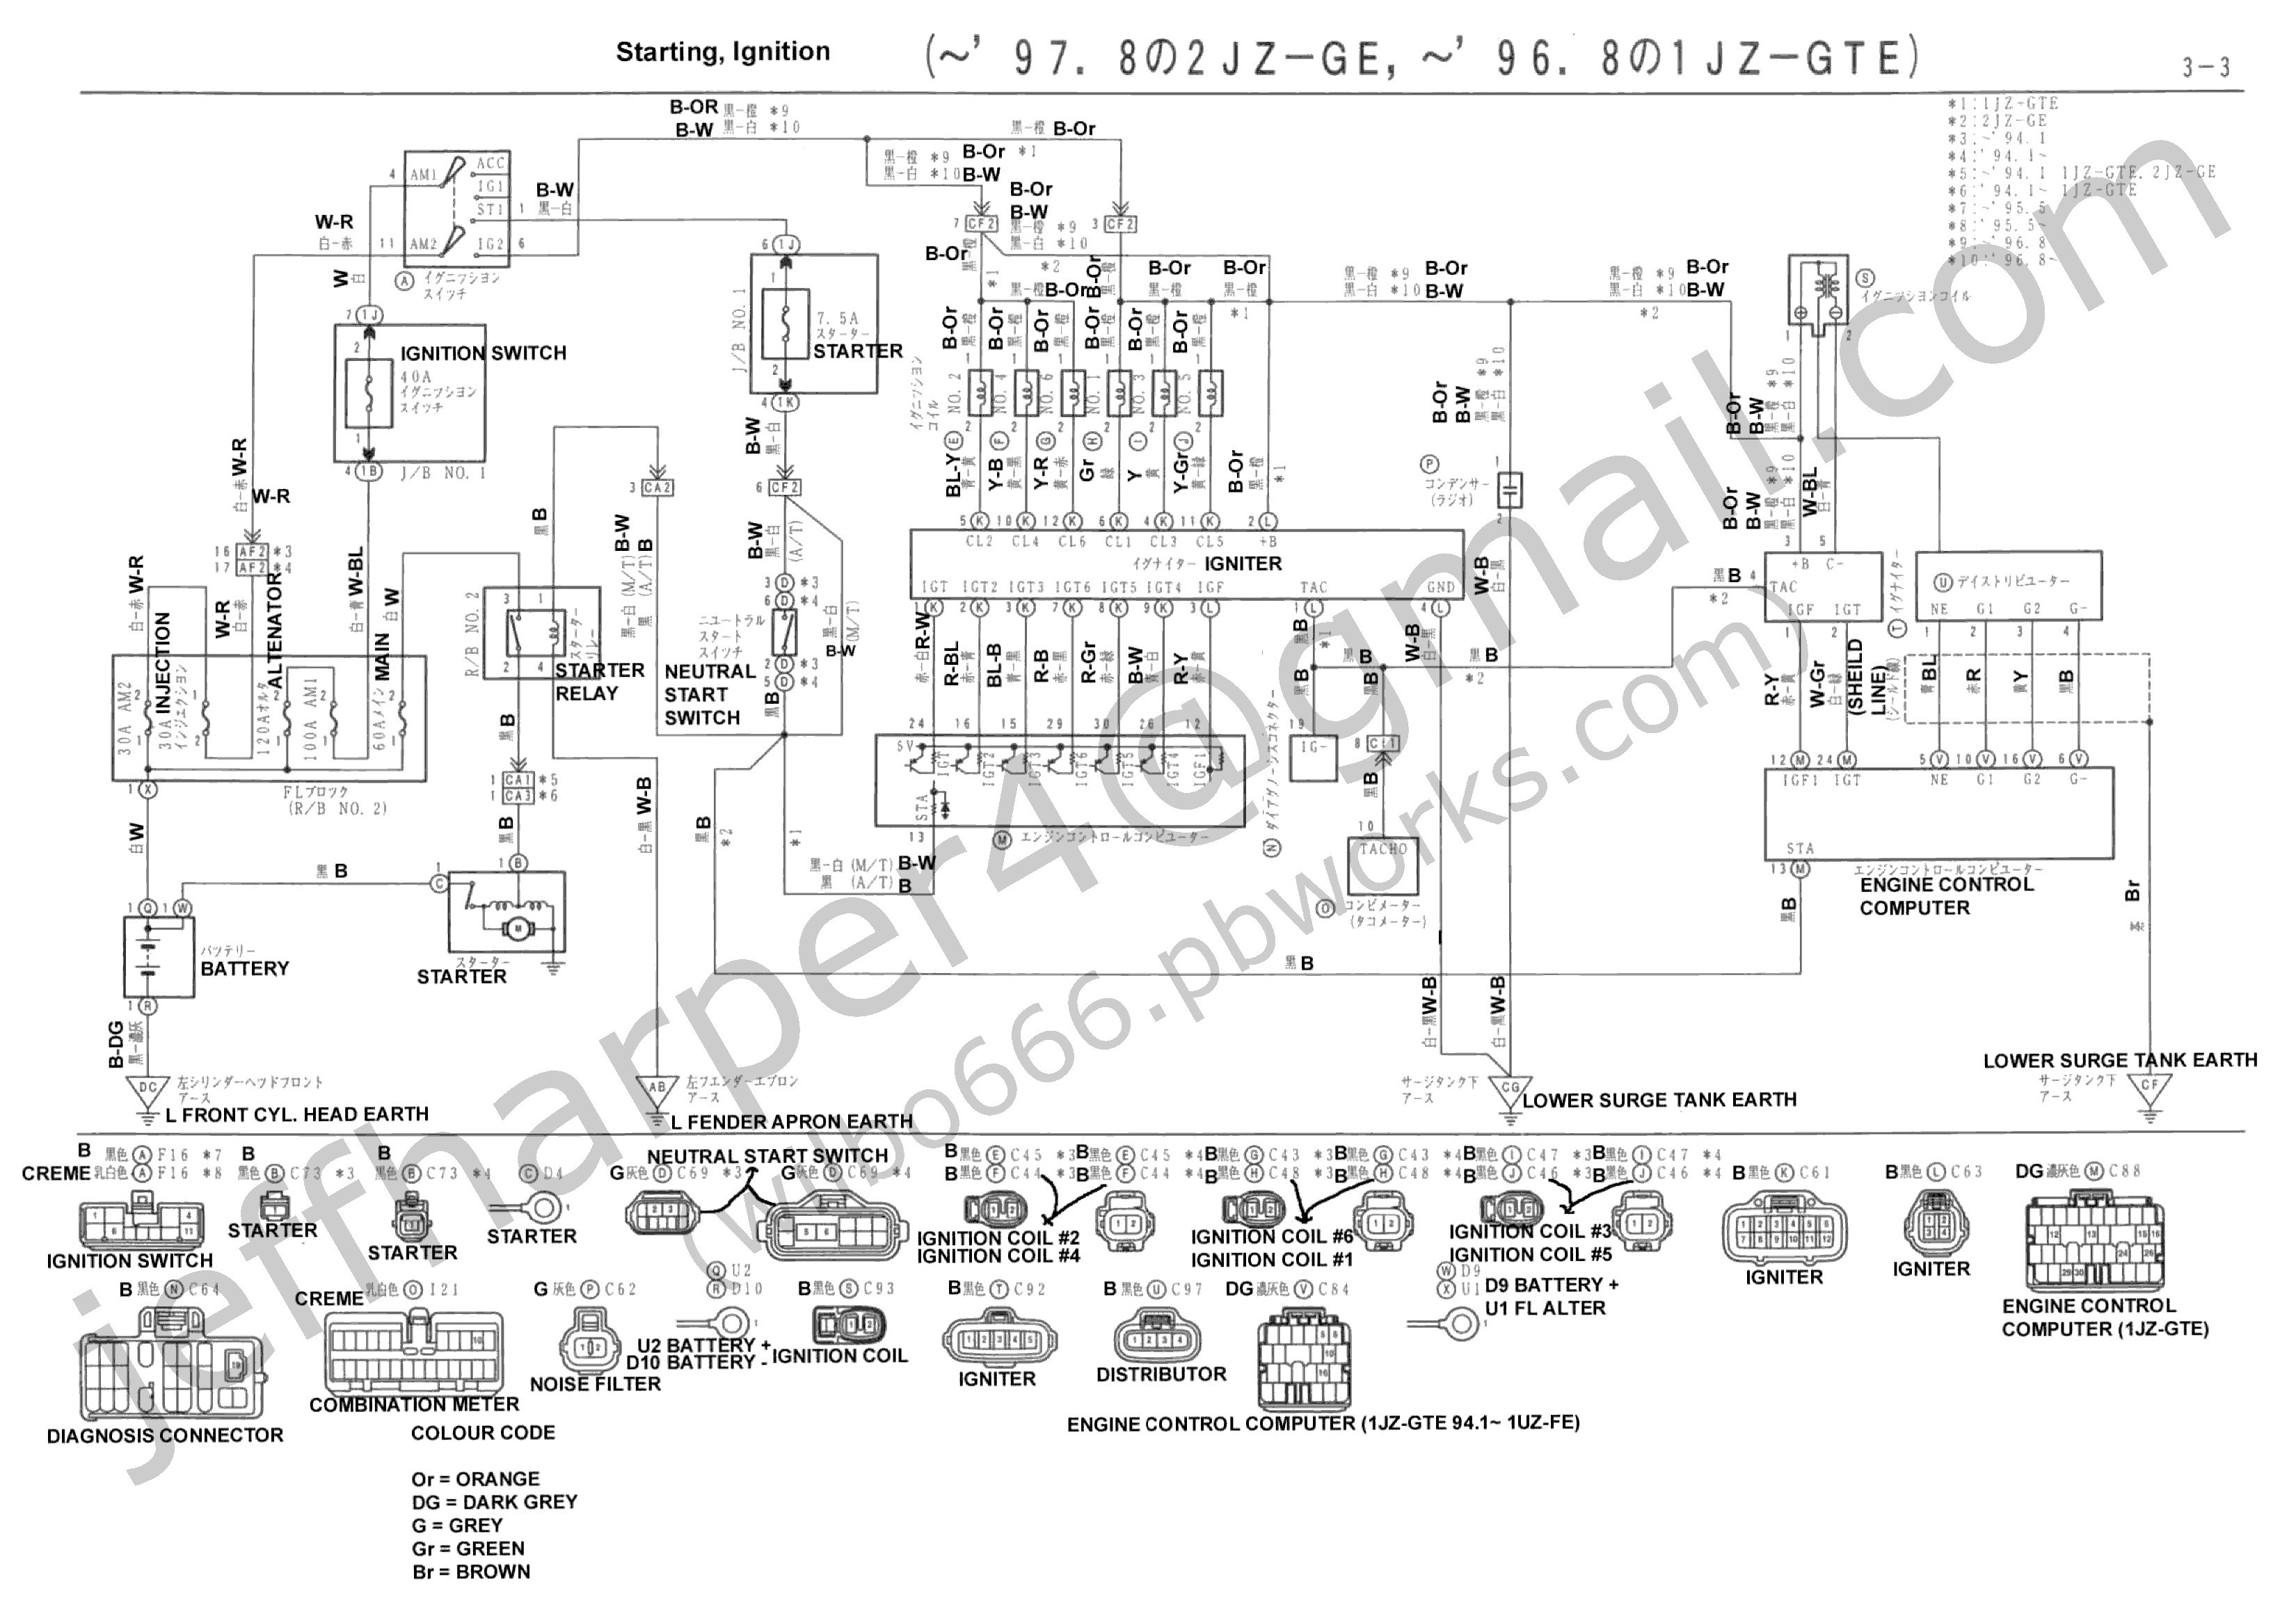 1991 toyota pickup alternator wiring diagram deutz f3l1011 1988 engine library